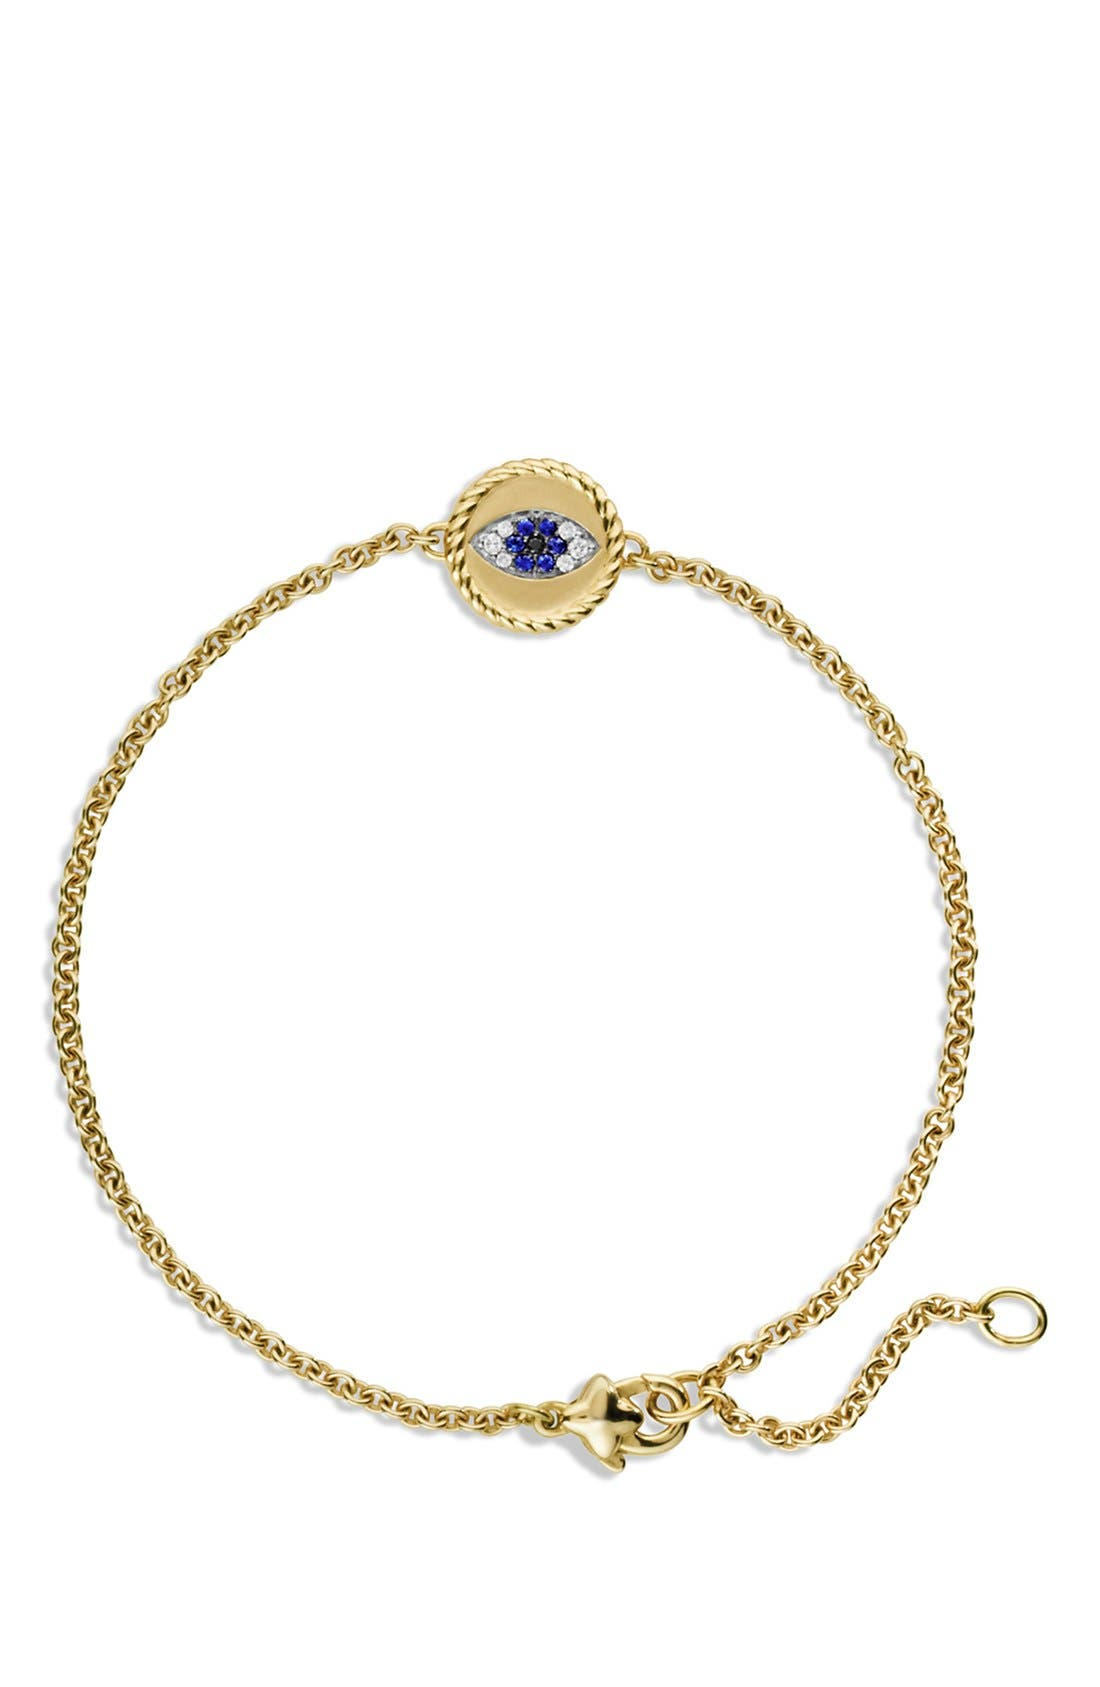 'Cable Collectibles' Pavé Evil Eye Charm with Blue Sapphire, Diamonds and Black Diamonds in Gold,                             Alternate thumbnail 3, color,                             BLUE SAPPHIRE/ DIAMOND